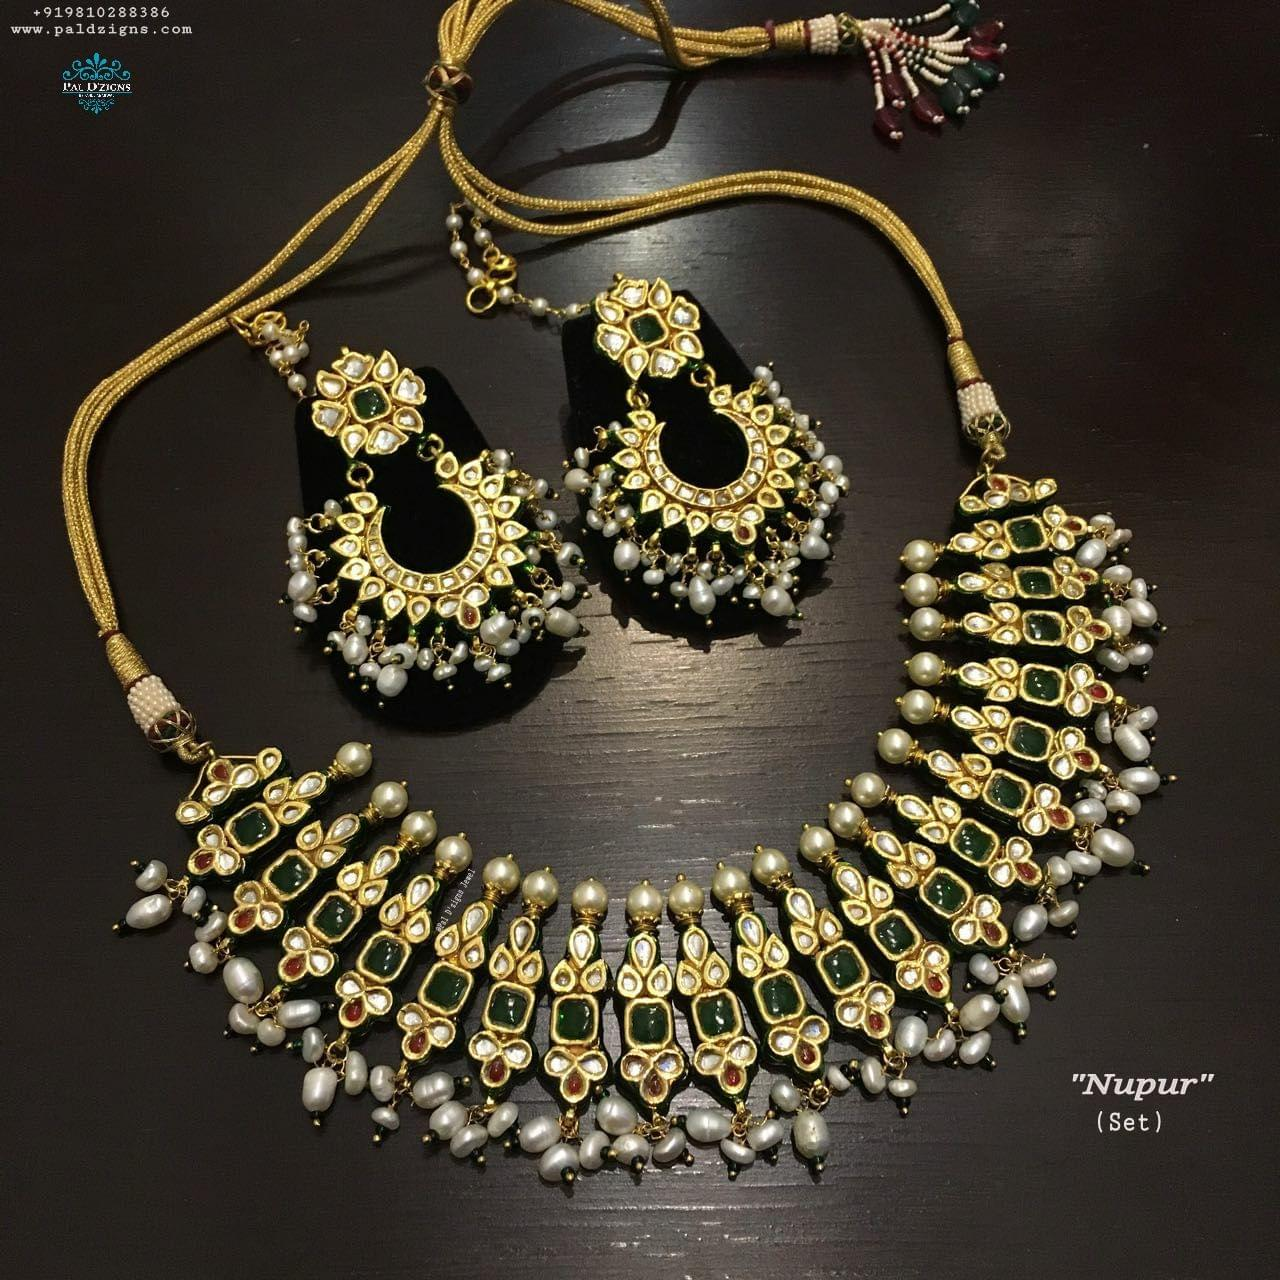 Nupur Necklace set